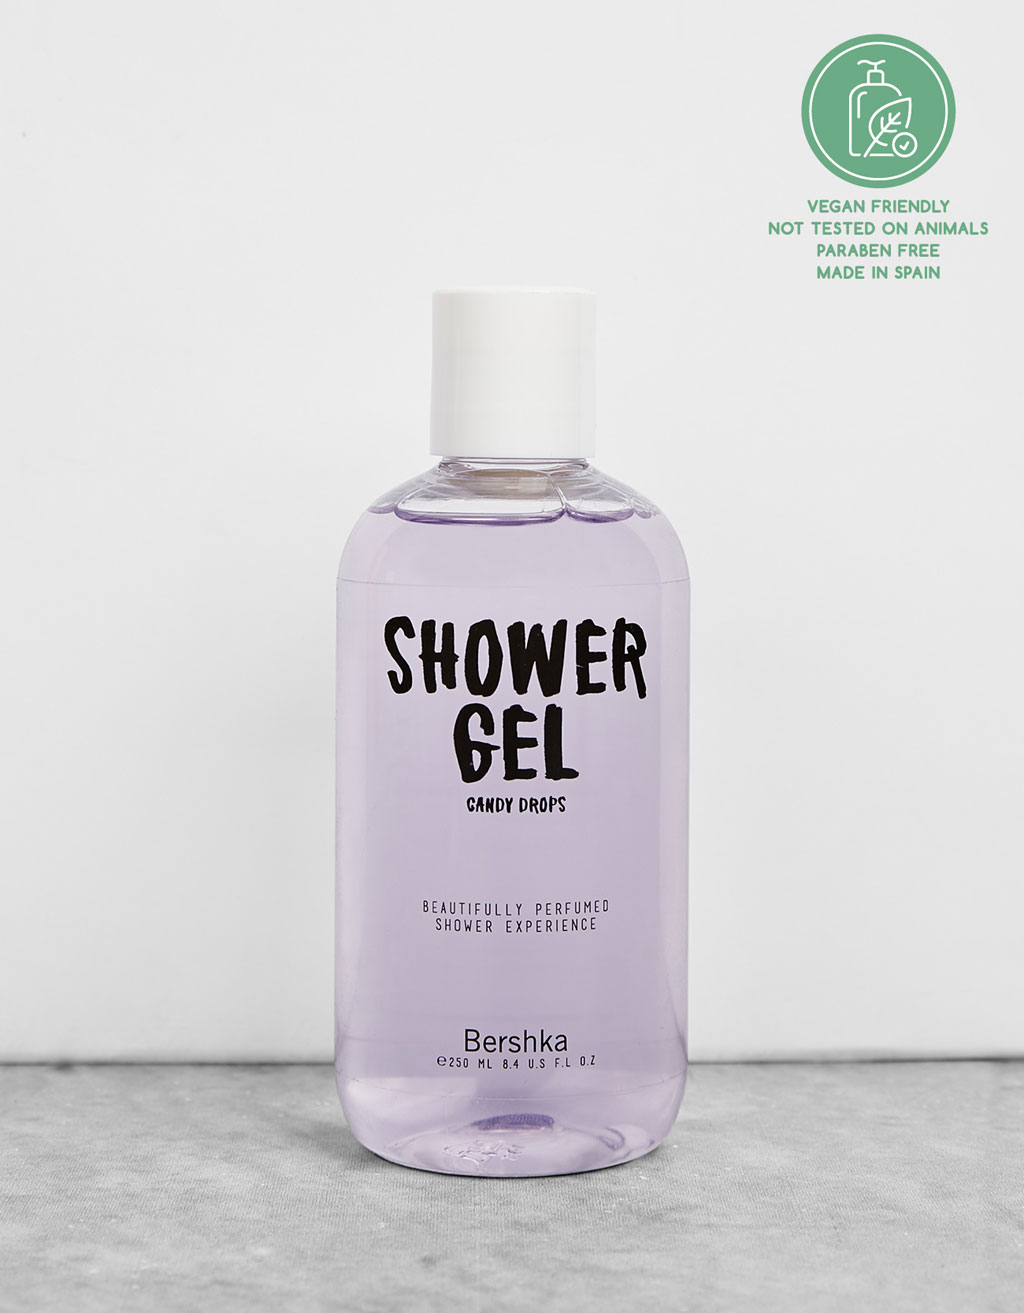 Bershka Shower Gel Candy Drops 250ml